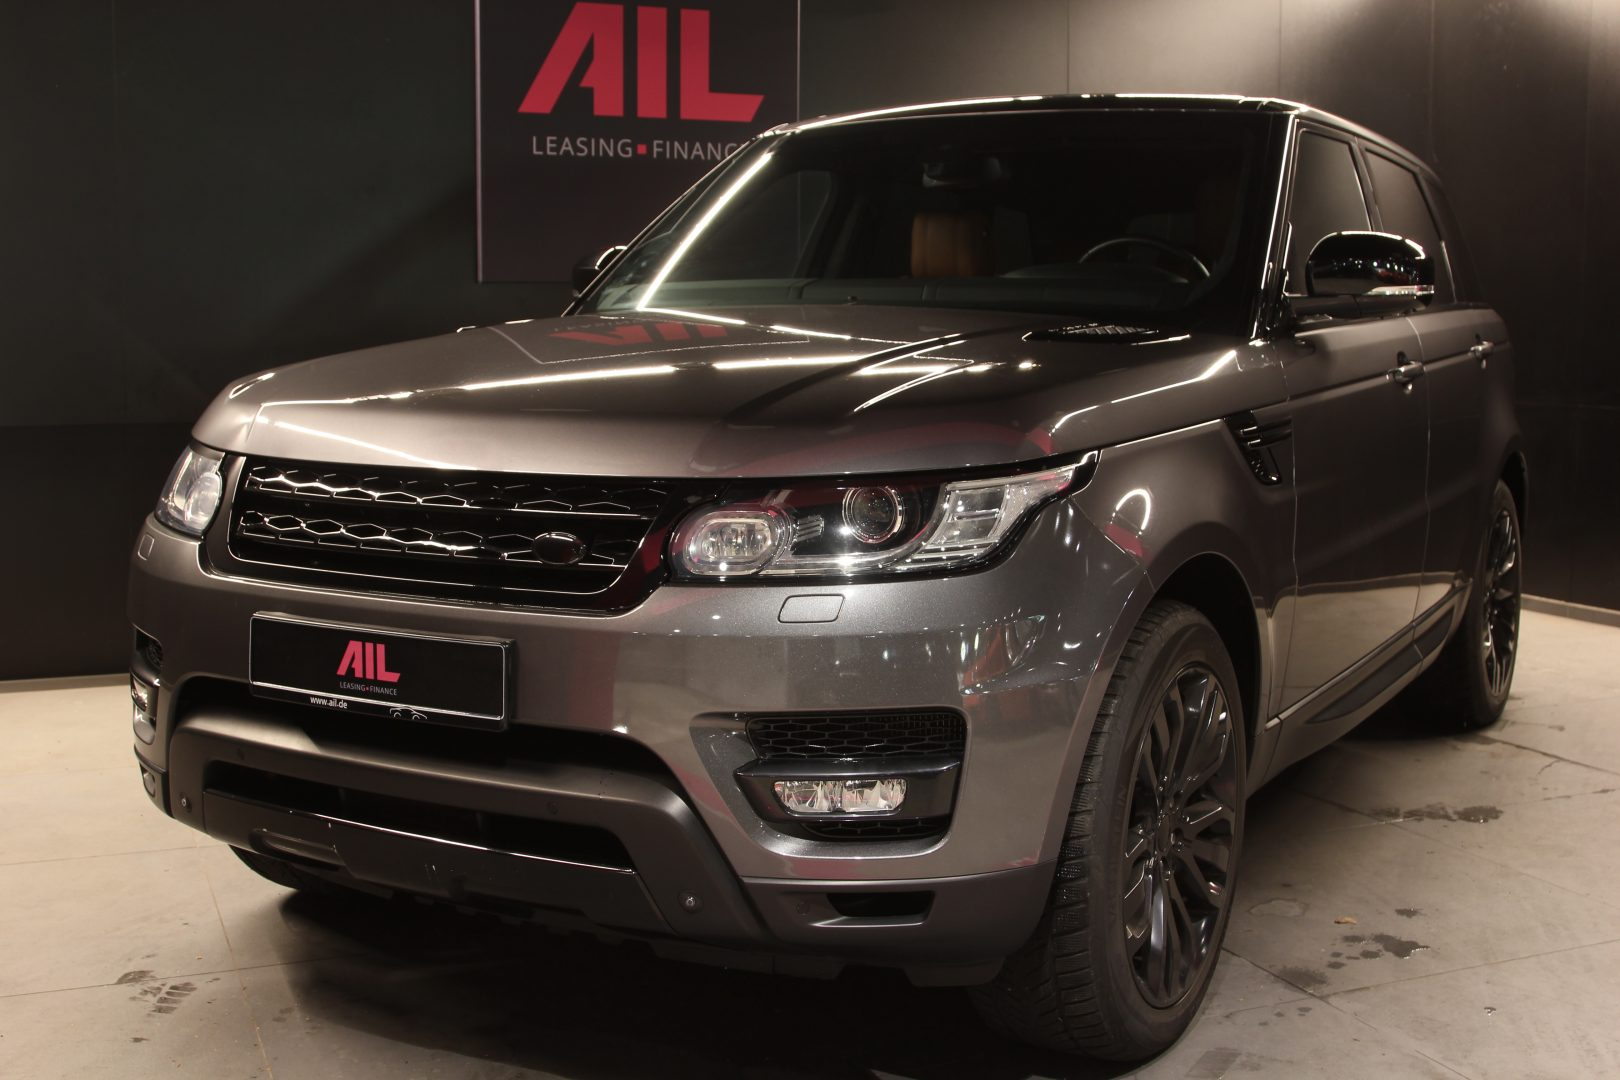 AIL Land Rover Range Rover Sport Autobiography  5.0 V8 2